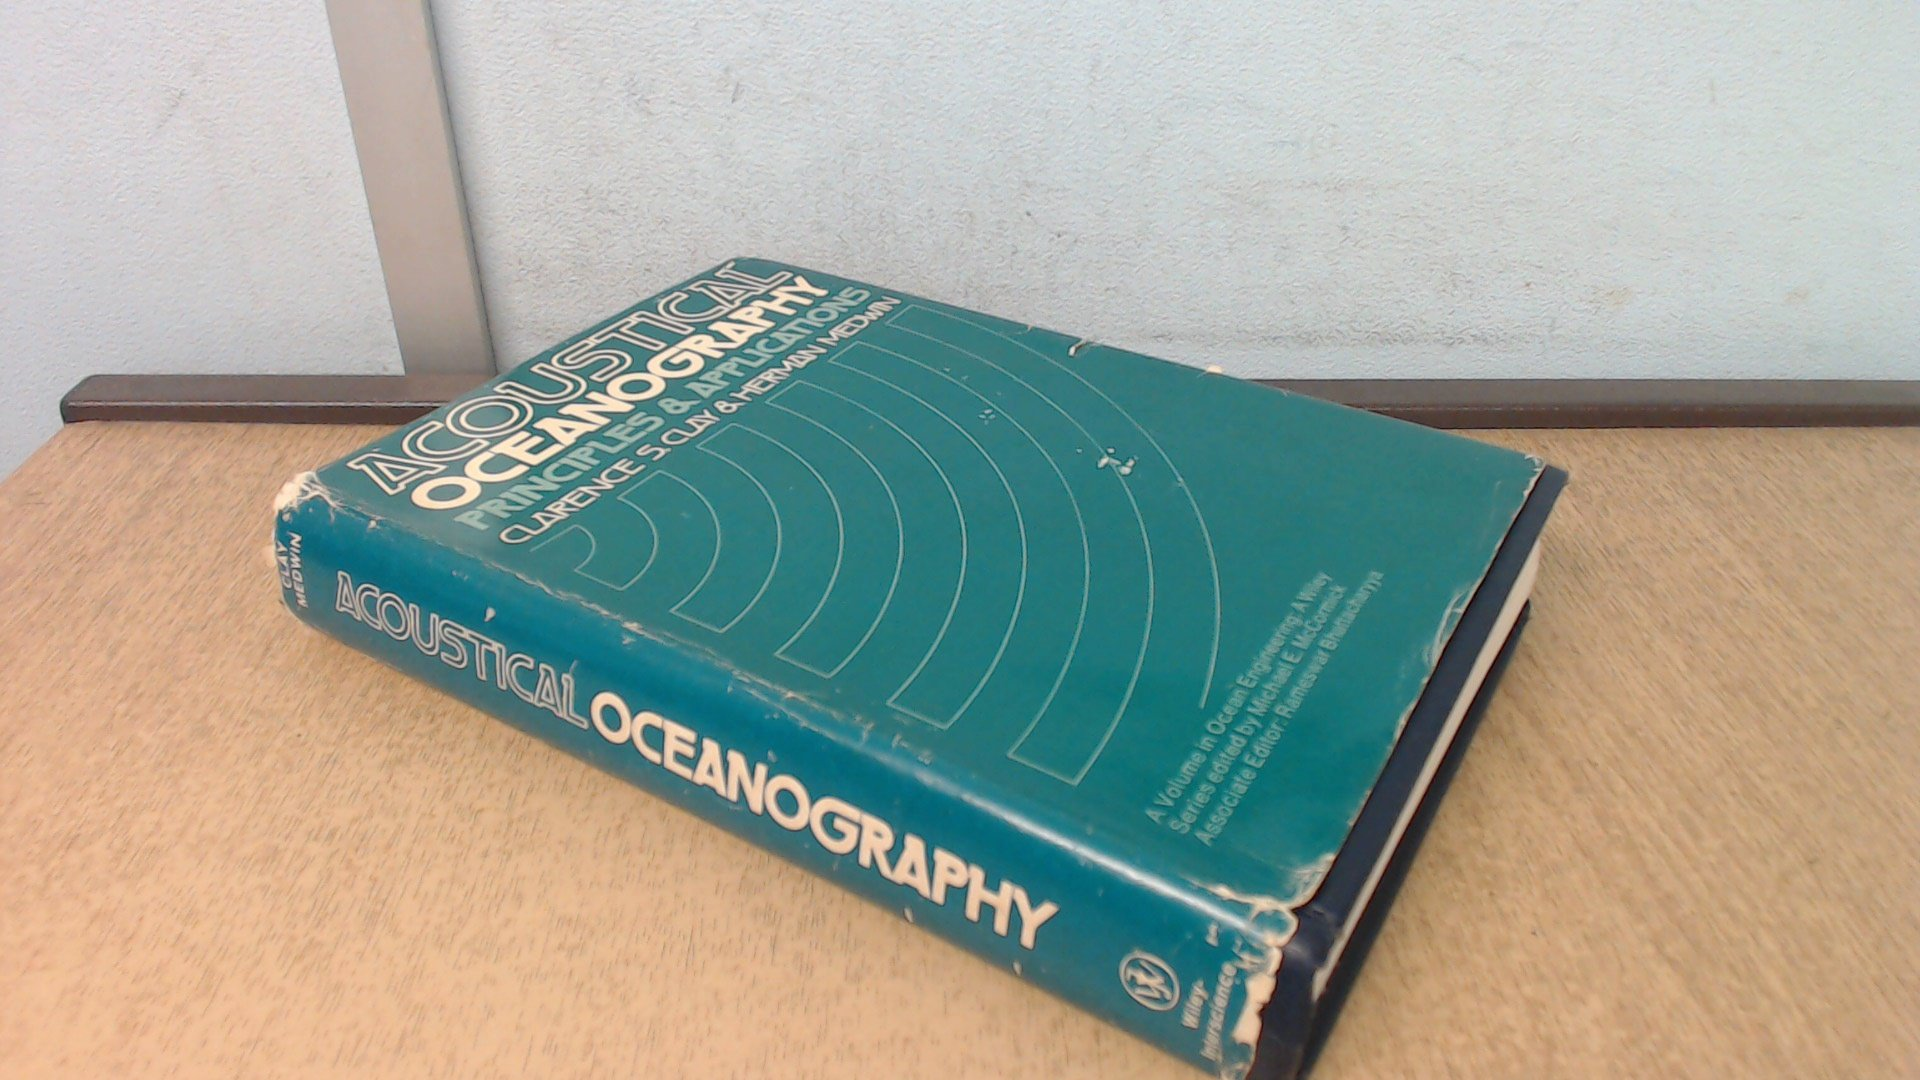 fundamentals of acoustical oceanography medwin herman clay clarence s